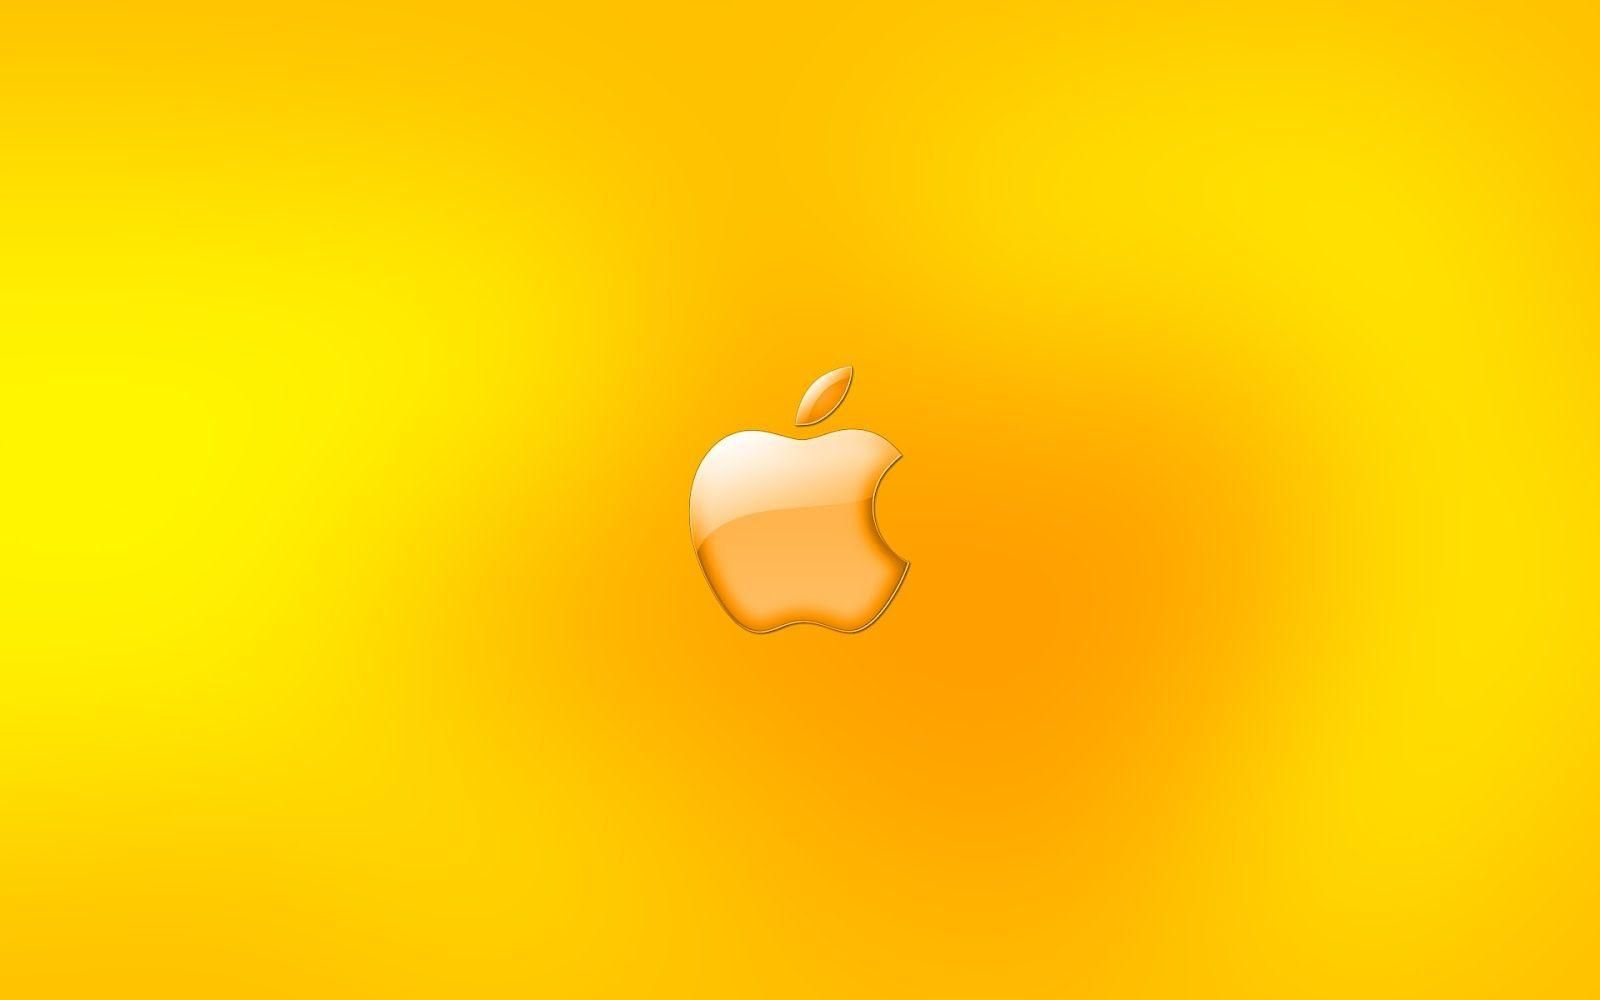 Free Download Yellow Backgrounds For Mac Apple Logo Wallpaper Yellow Wallpaper Wallpaper Iphone Summer